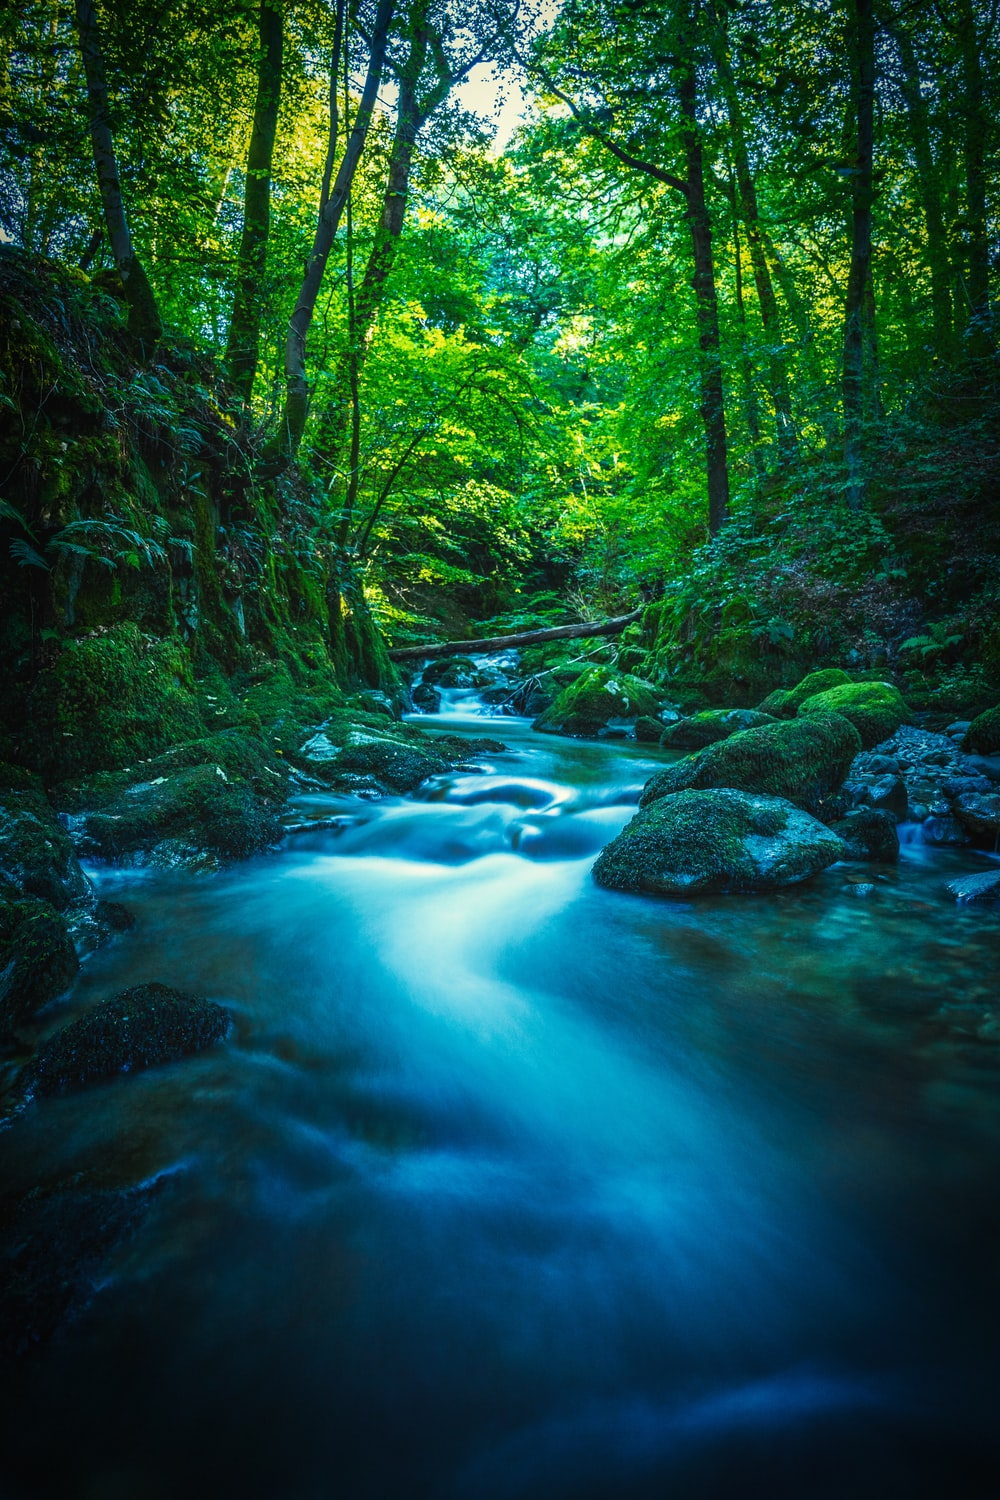 green river in the middle of forest during daytime